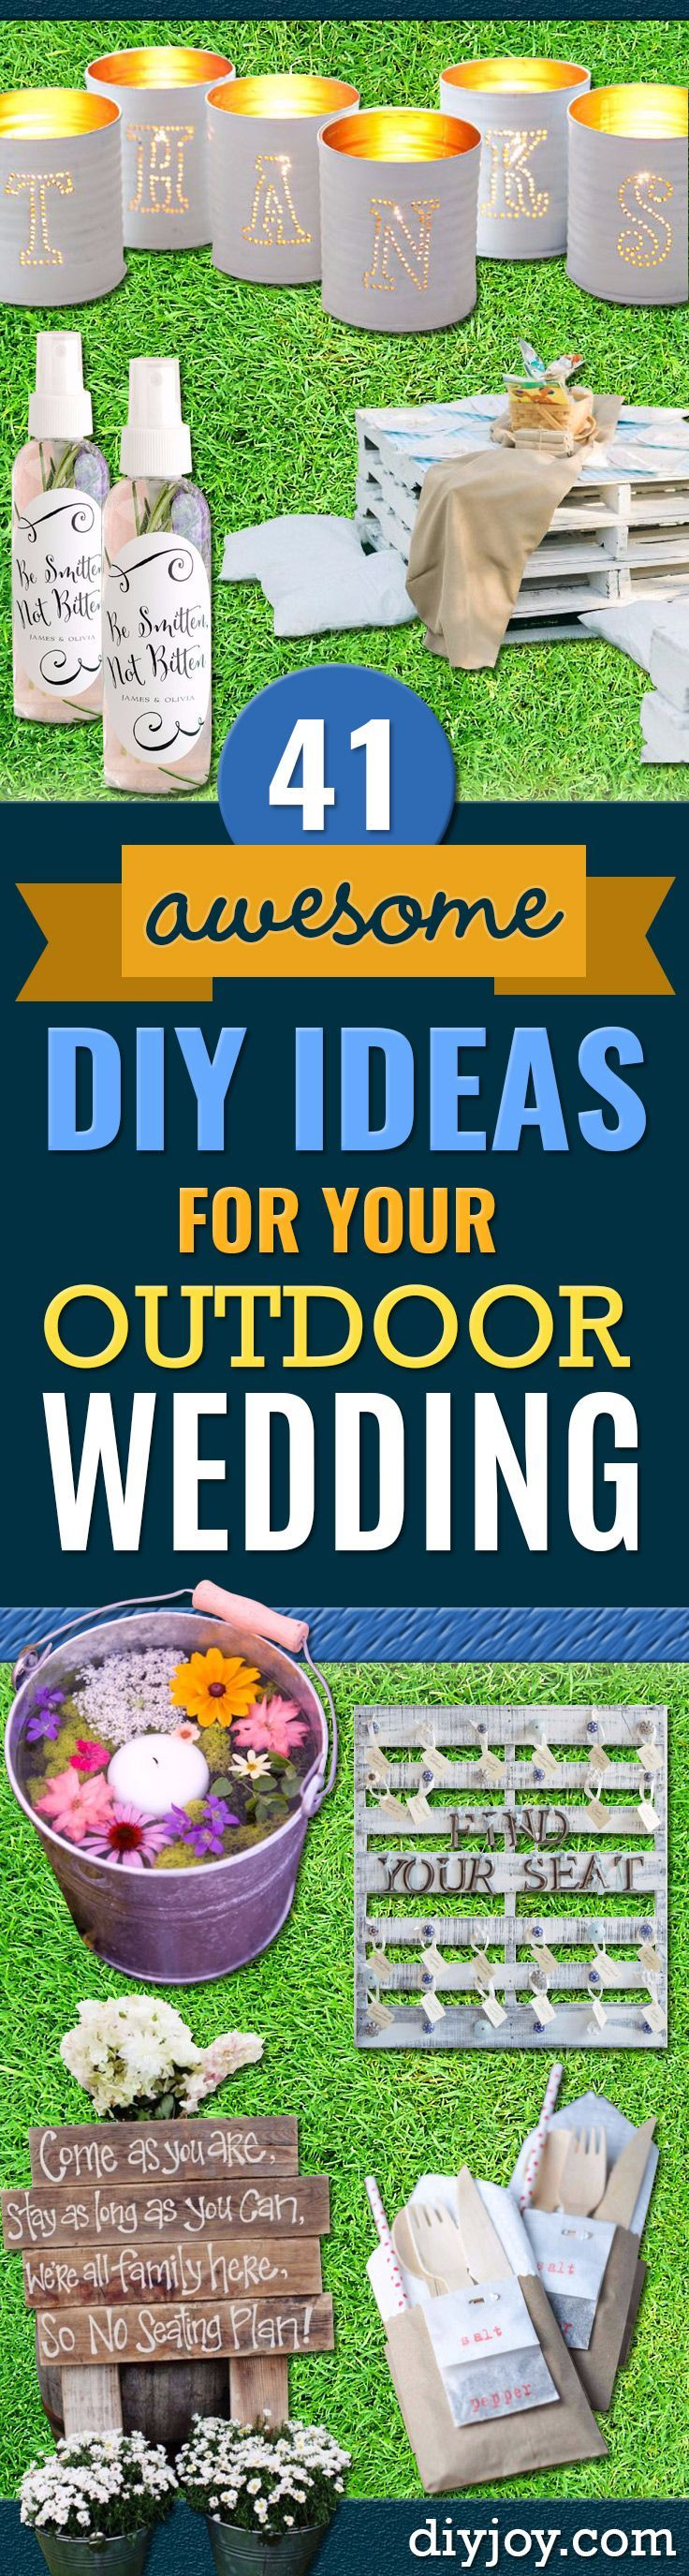 DIY Outdoors Wedding Ideas - Step by Step Tutorials and Projects Ideas for Summer Brides - Lighting, Mason Jar Centerpieces, Table Decor, Party Favors, Guestbook Ideas, Signs, Flowers, Banners, Tablecloth and Runners, Napkins, Seating and Lights - Cheap and Ideas DIY Decor for Weddings http://diyjoy.com/diy-outdoor-wedding